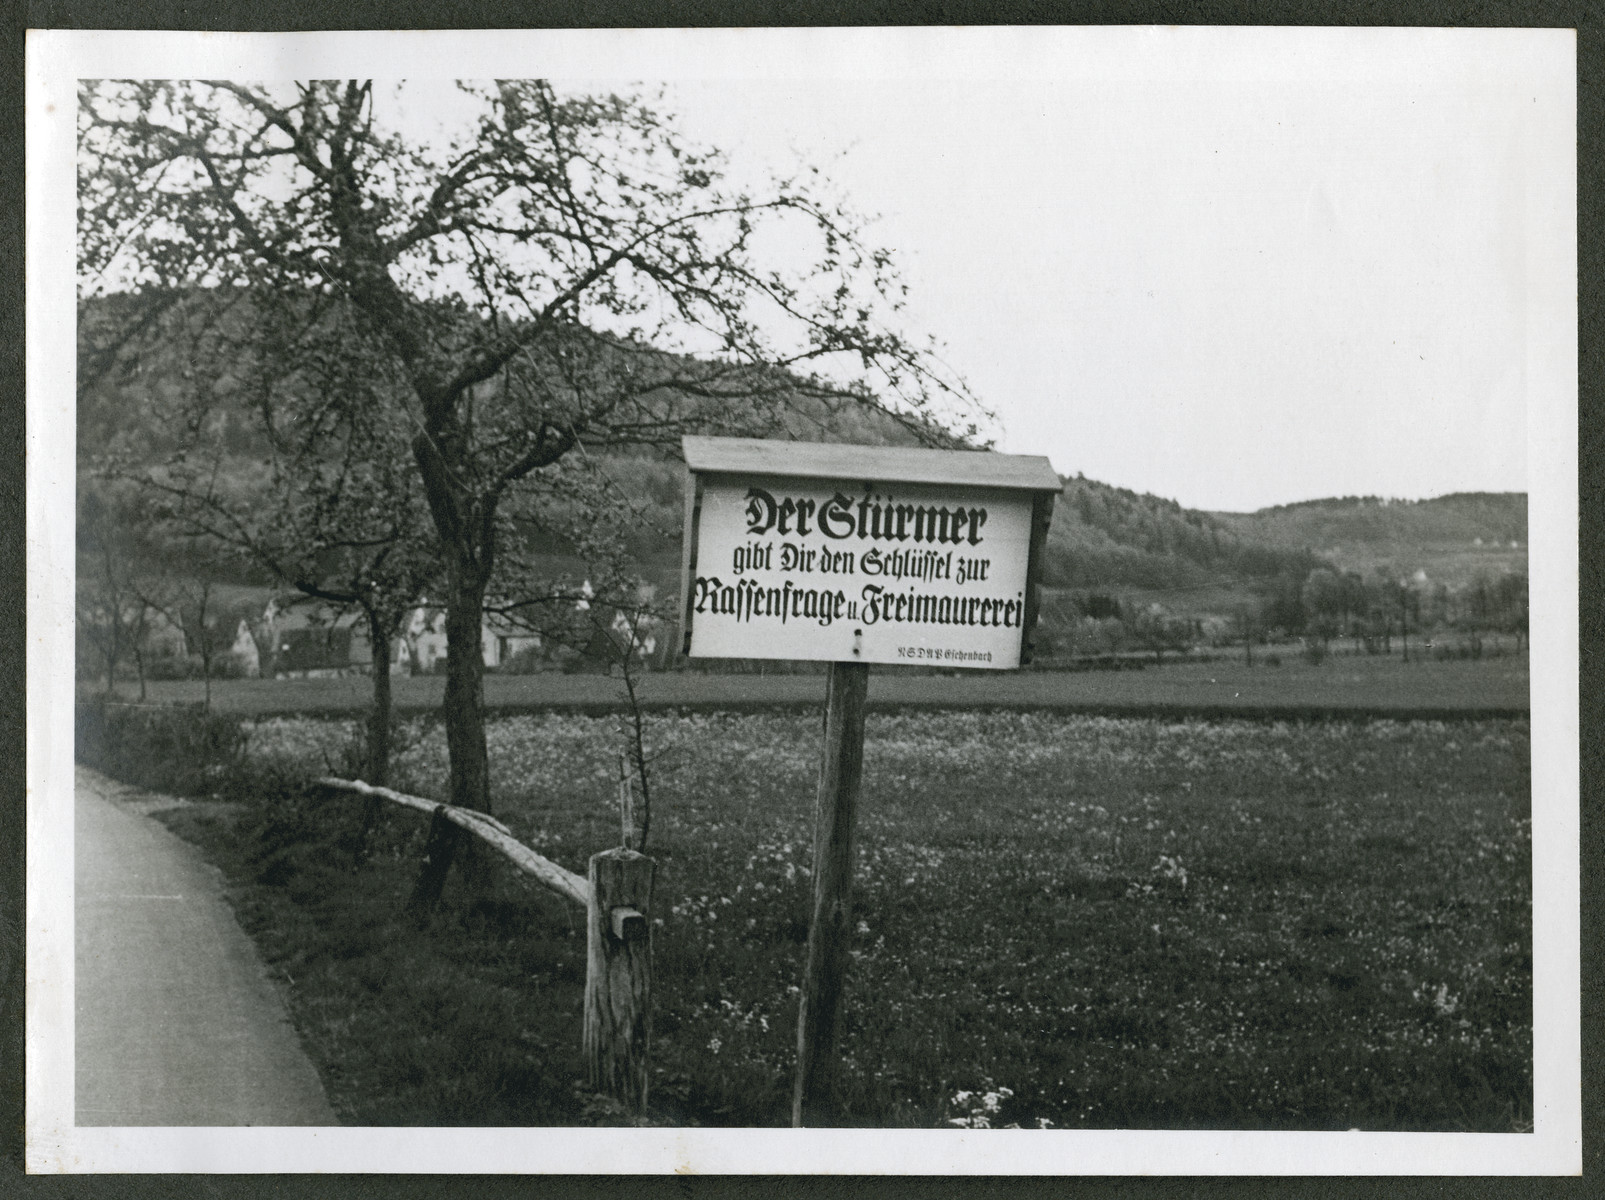 "One photograph from an album of antisemitic signs in Germany.  The sign (in German) reads, ""Der Stuermer gibt Dir den Schluessel zur Rassenfrage und Freimaurerei.  NSDAP Eichenabach."" [Der Stuermer gives you the key to the race question and free masonry.]"